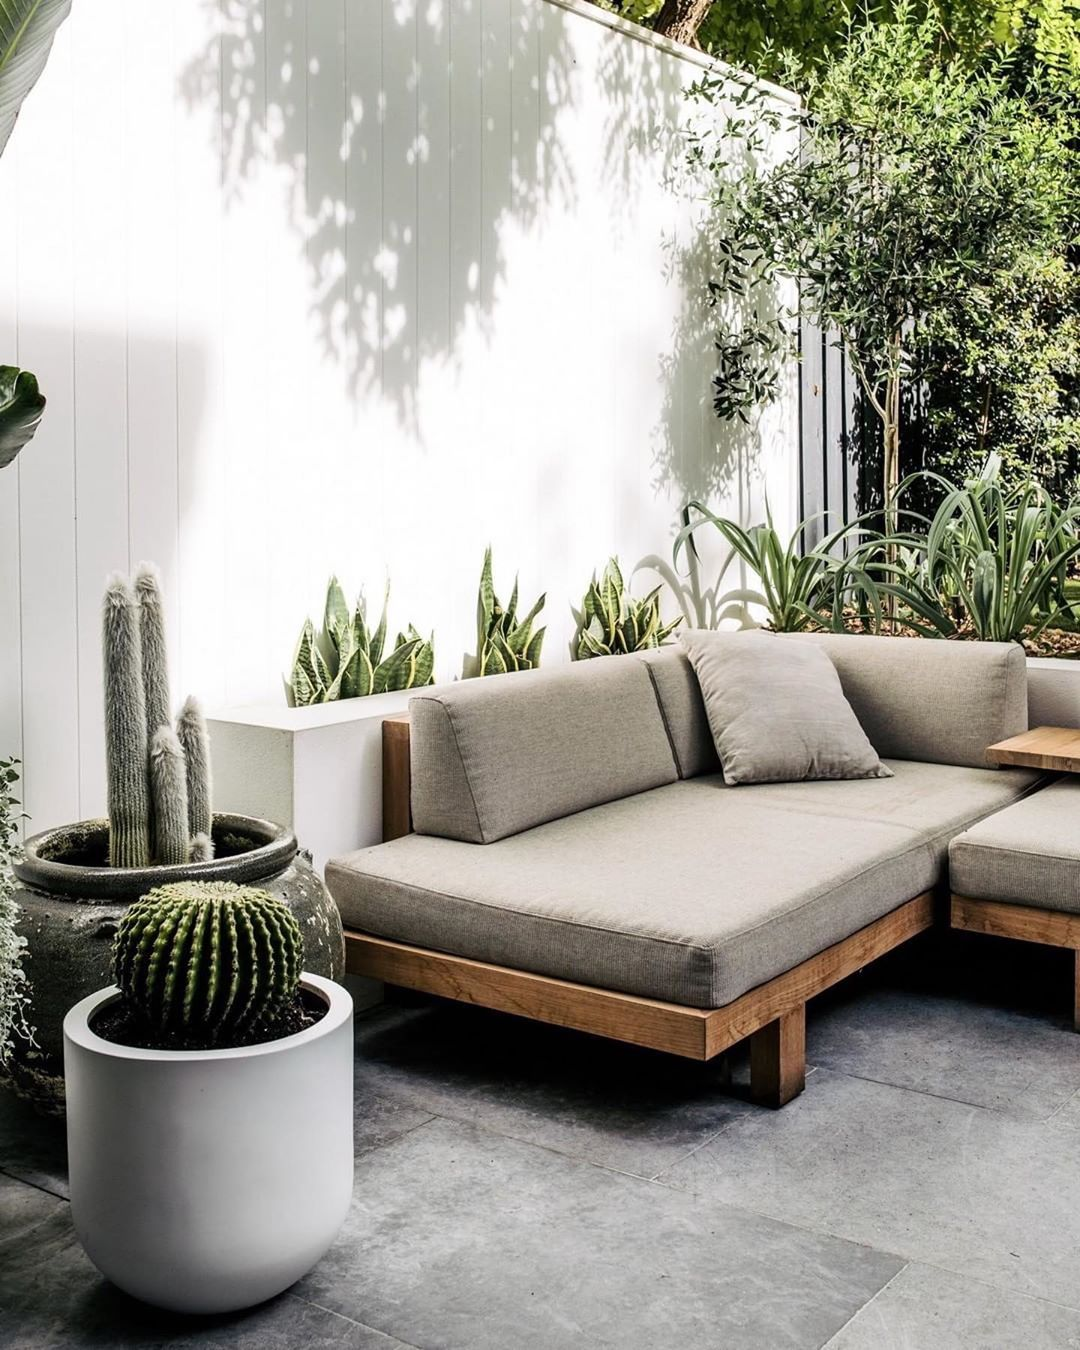 The Tribu Pure Sofa Sitting Nicely In This Contemporary Rustic